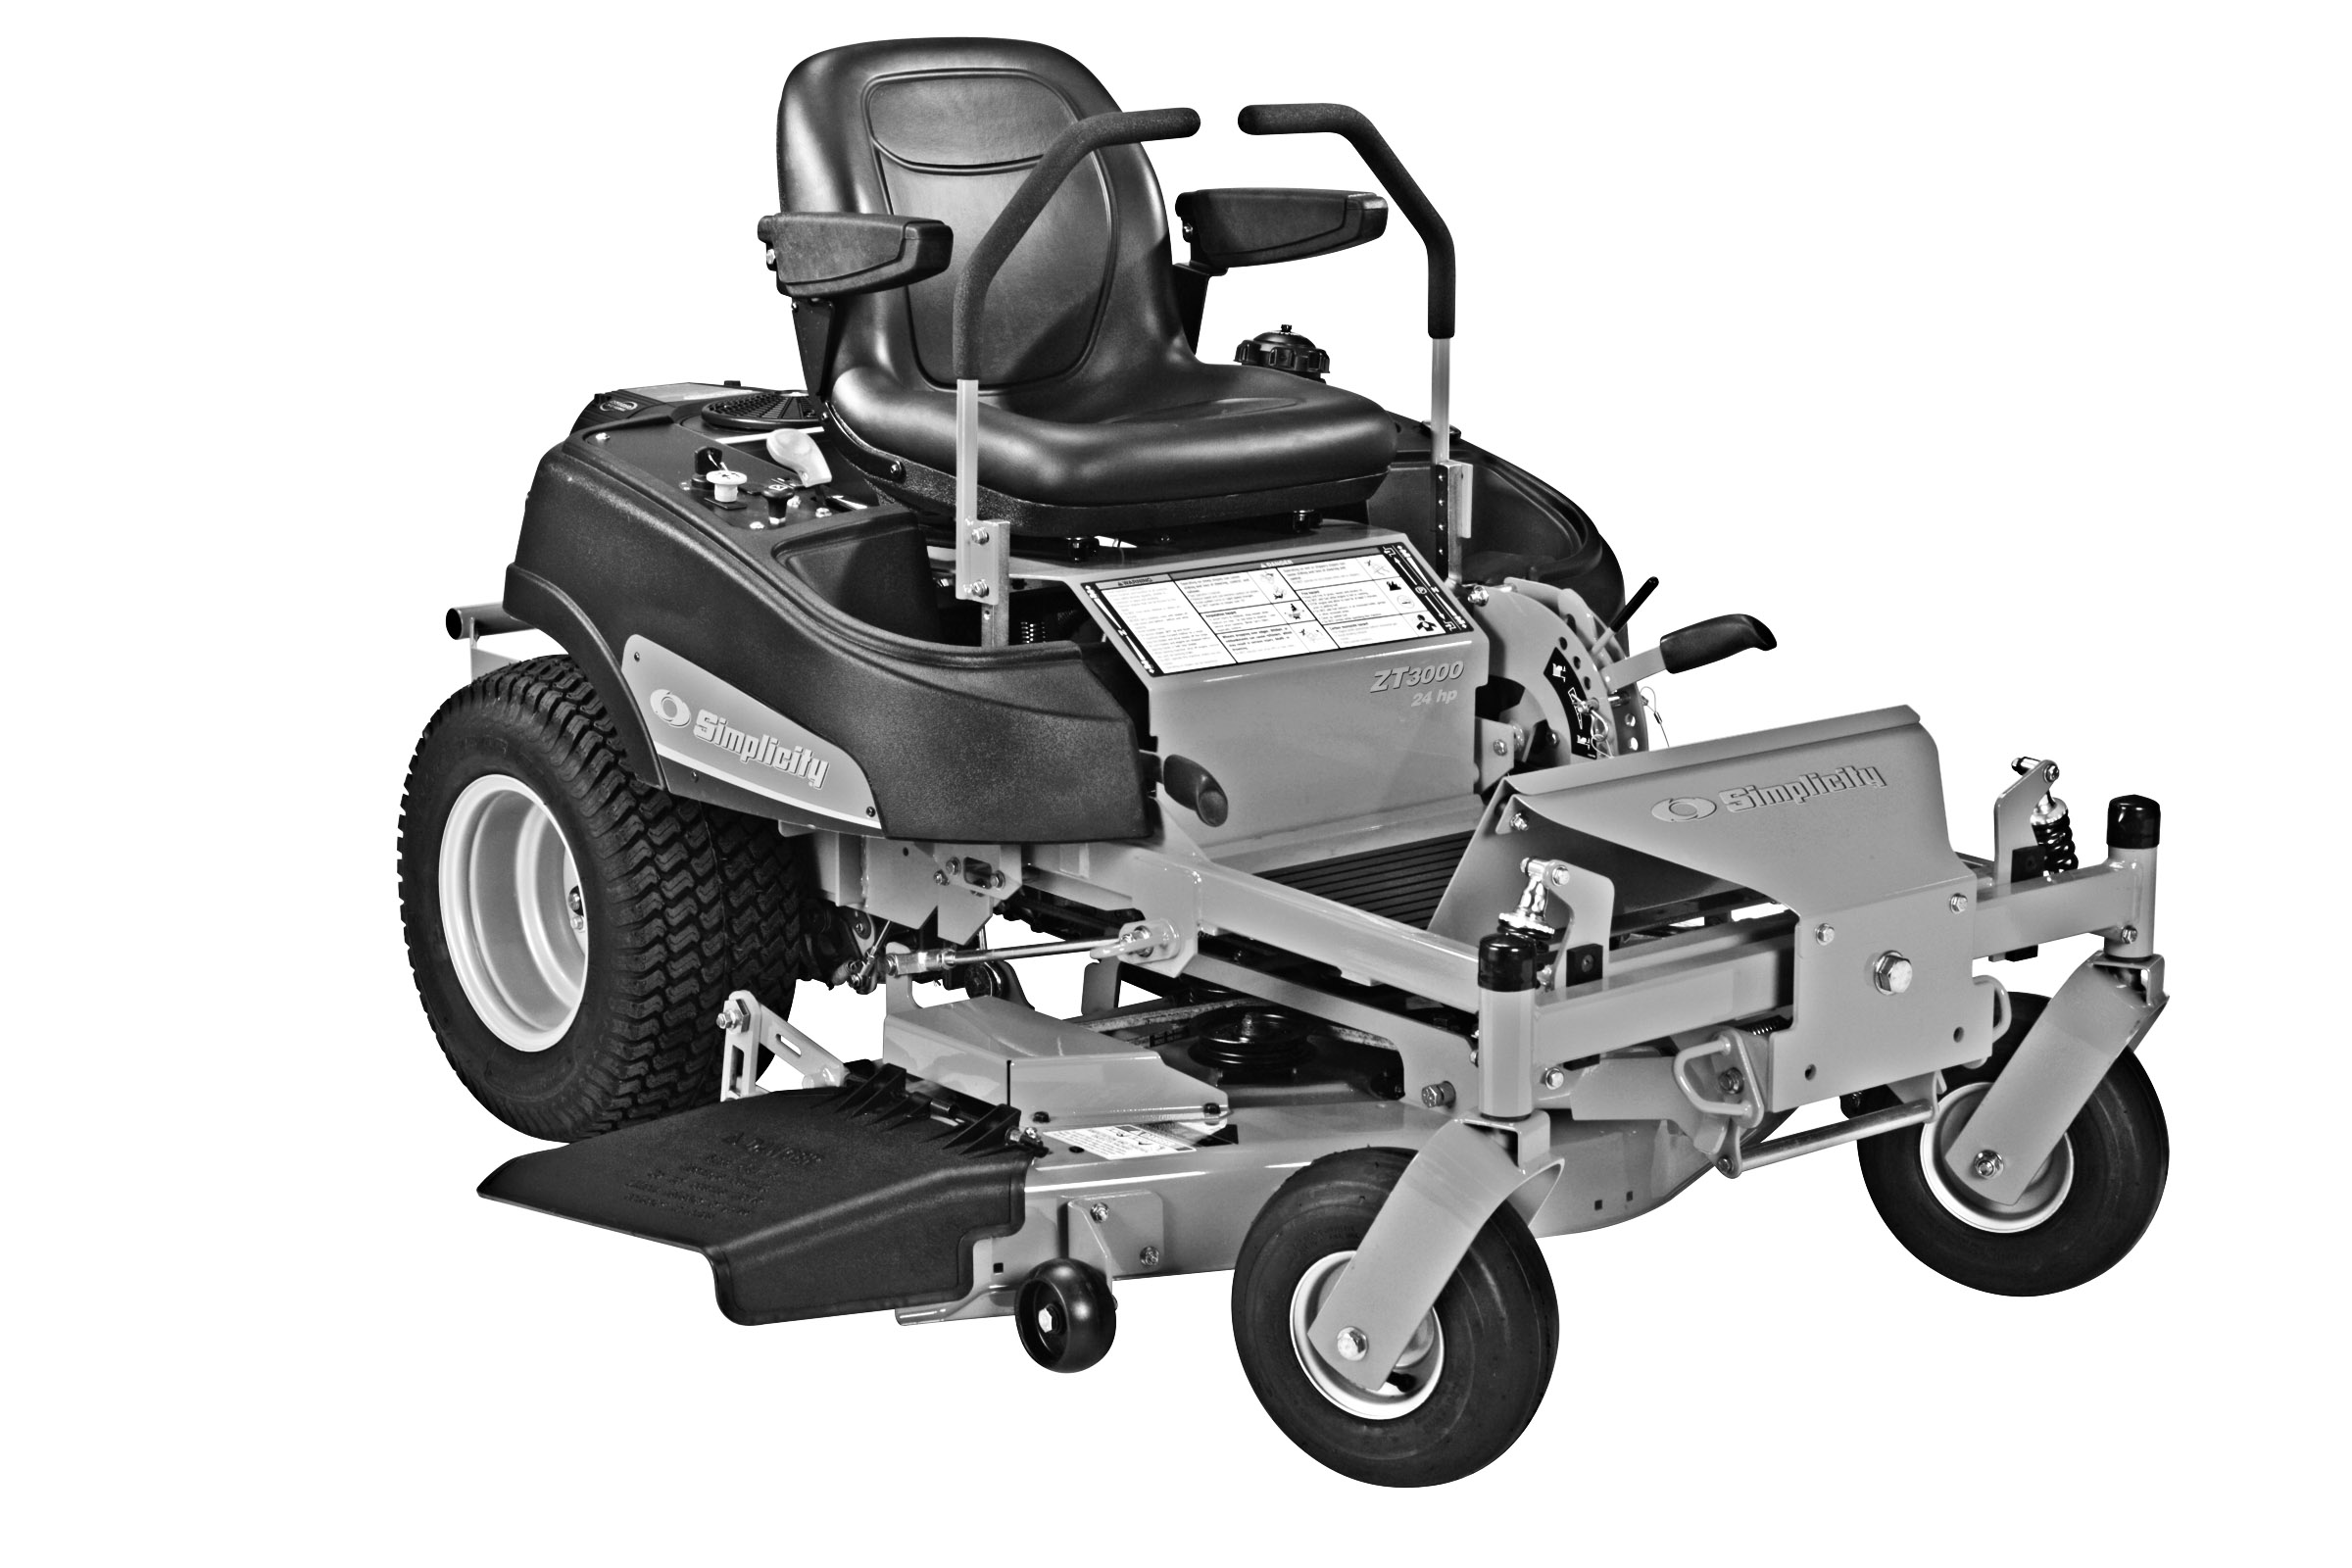 Riding Lawn Mower Clip Art Images   Thecelebritypix